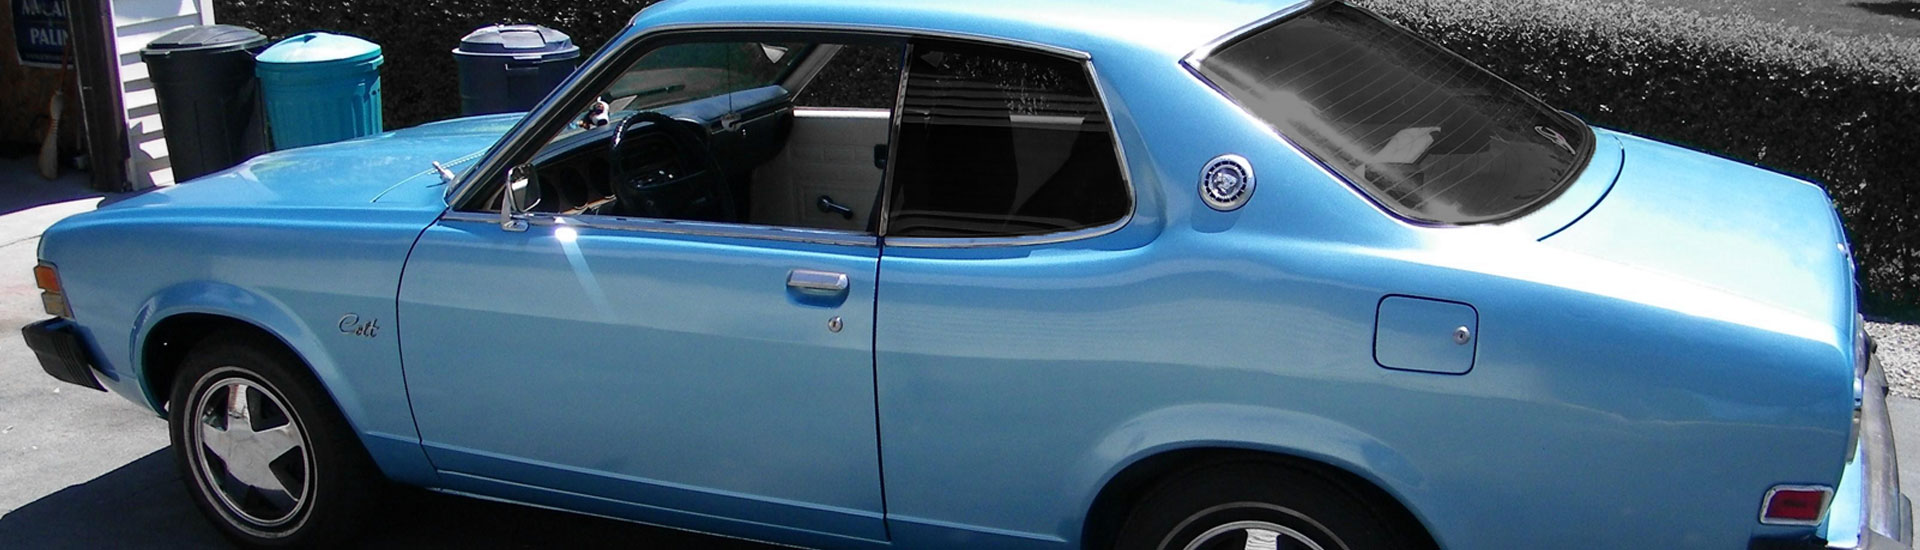 Dodge Colt Window Tint